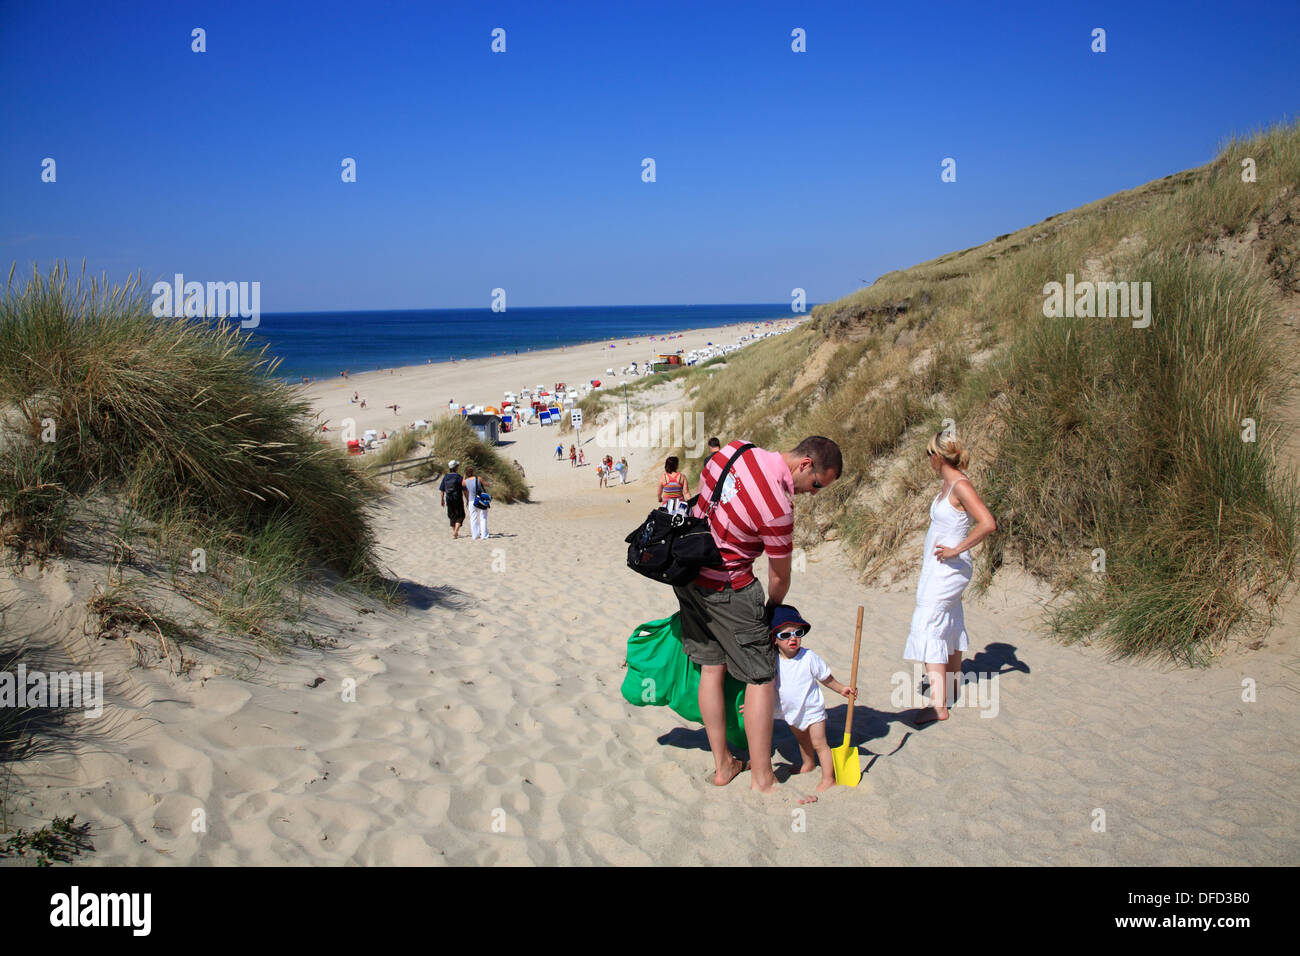 Way to Wenningstedt beach, Sylt Island, Schleswig-Holstein, Germany - Stock Image